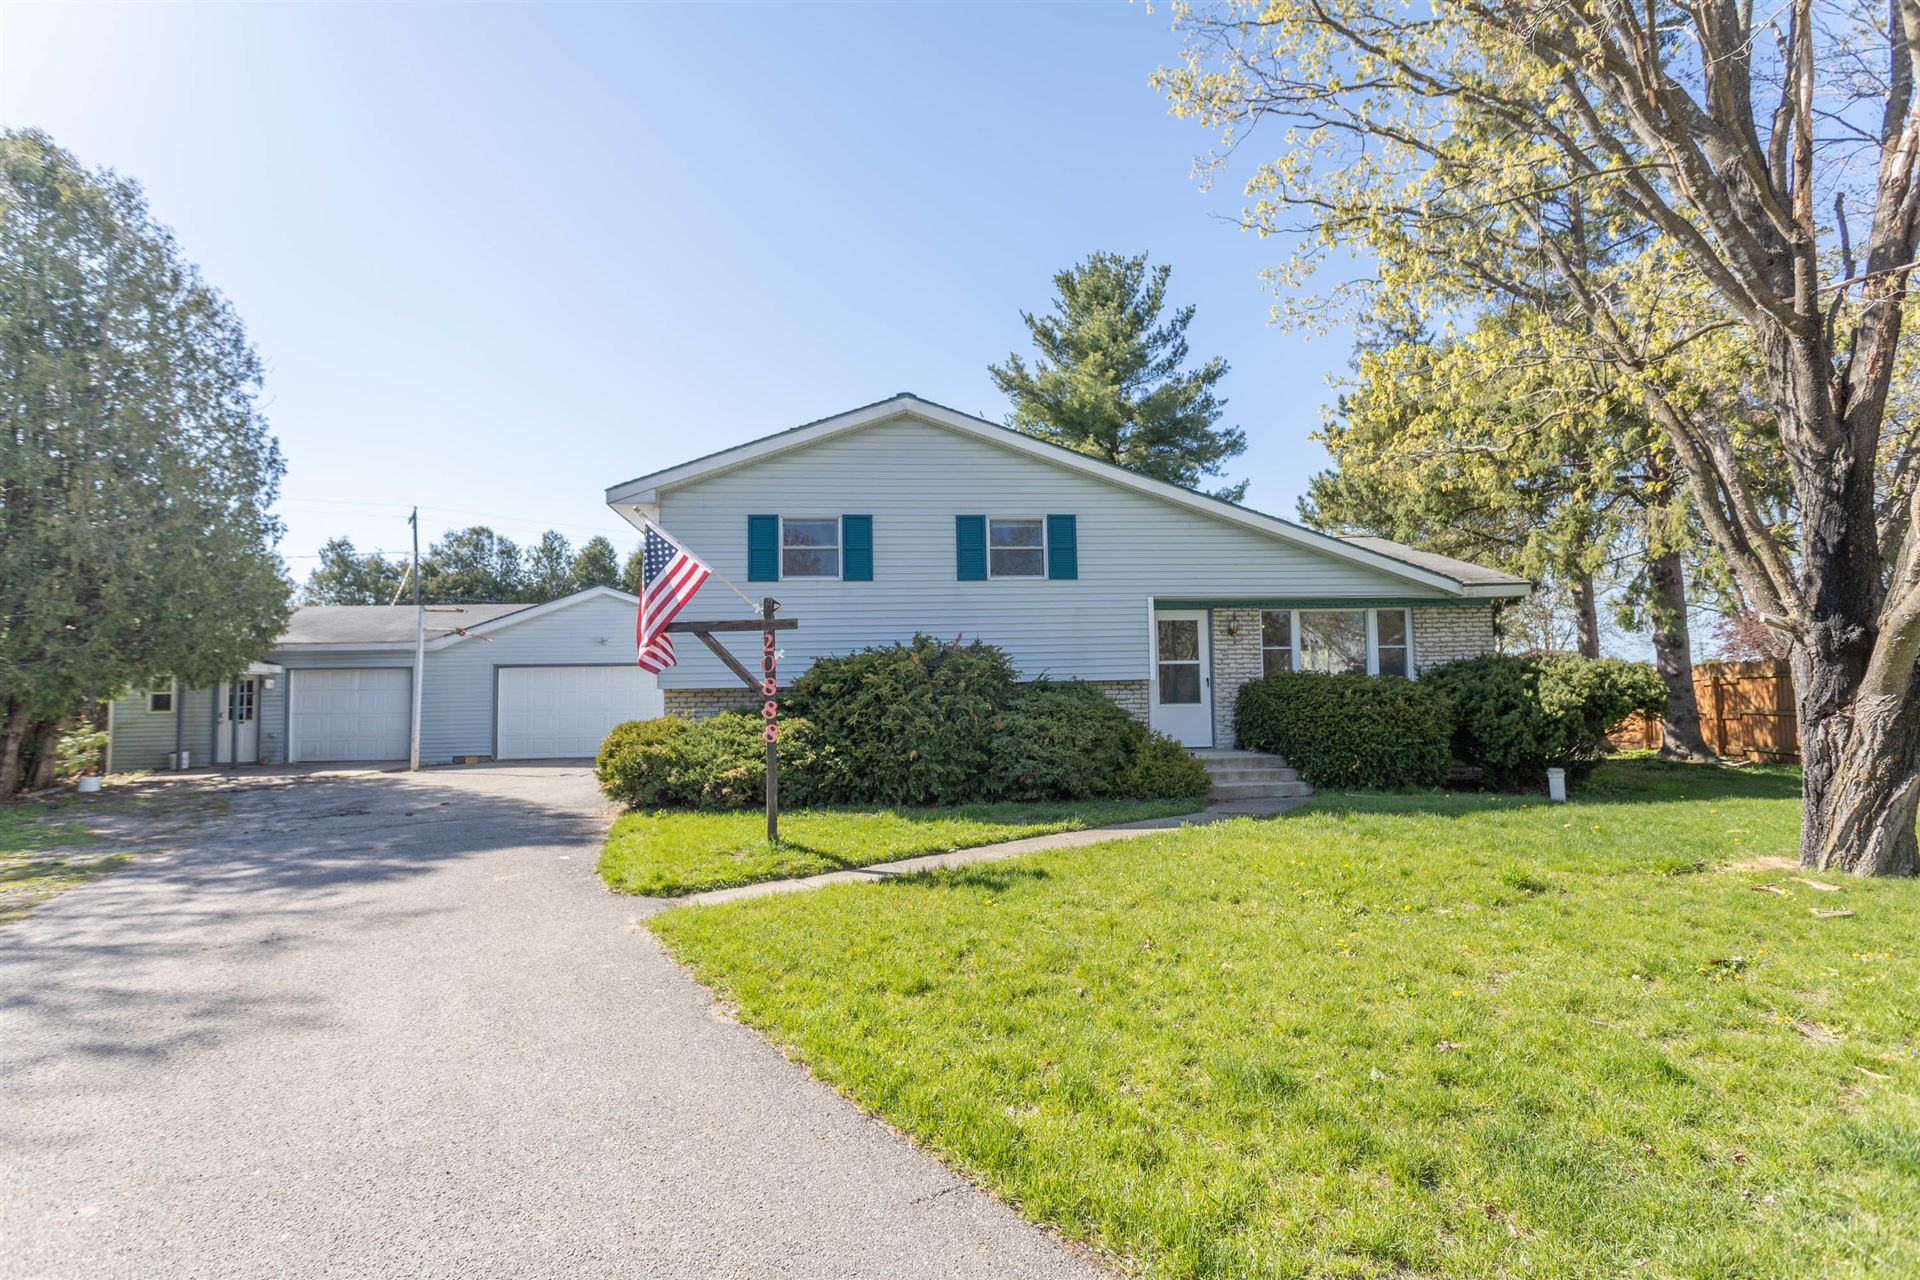 20888 Emerald Lane, Big Rapids, MI 49307 - MLS#: 21011608